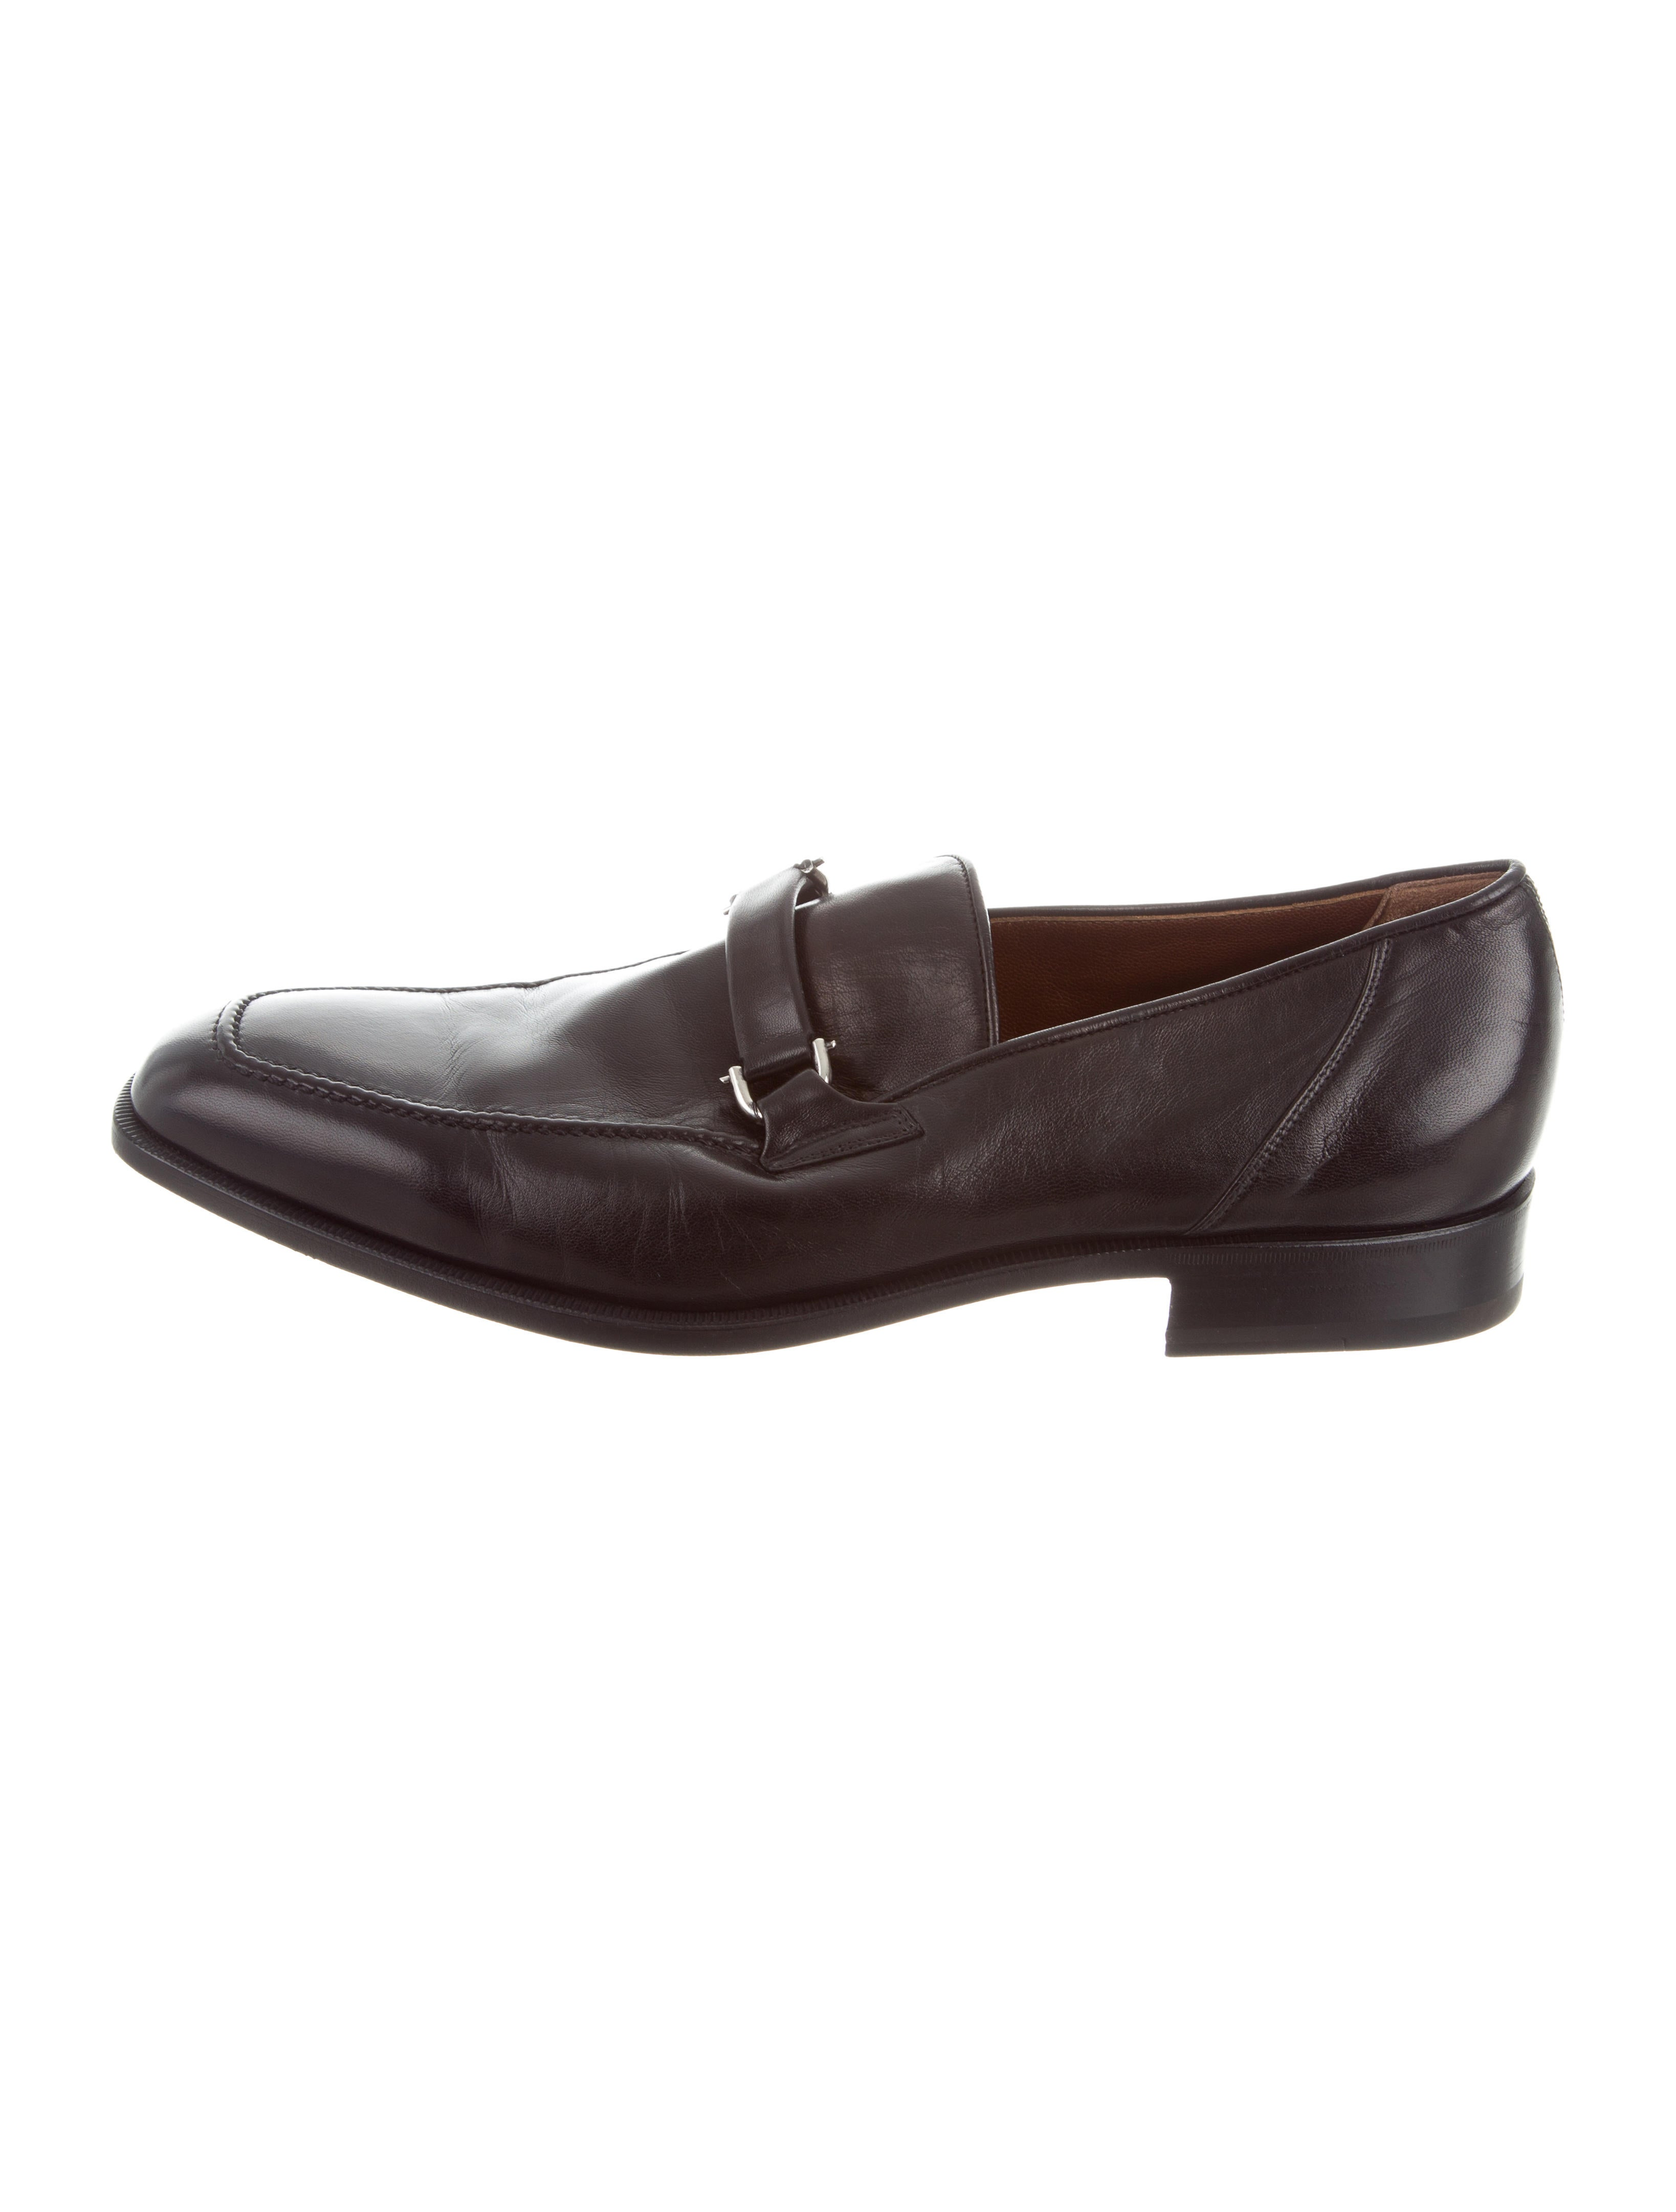 Fratelli Rossetti Leather Square-Toe Oxfords outlet latest collections really cheap online buy cheap largest supplier oZZfRPUIz